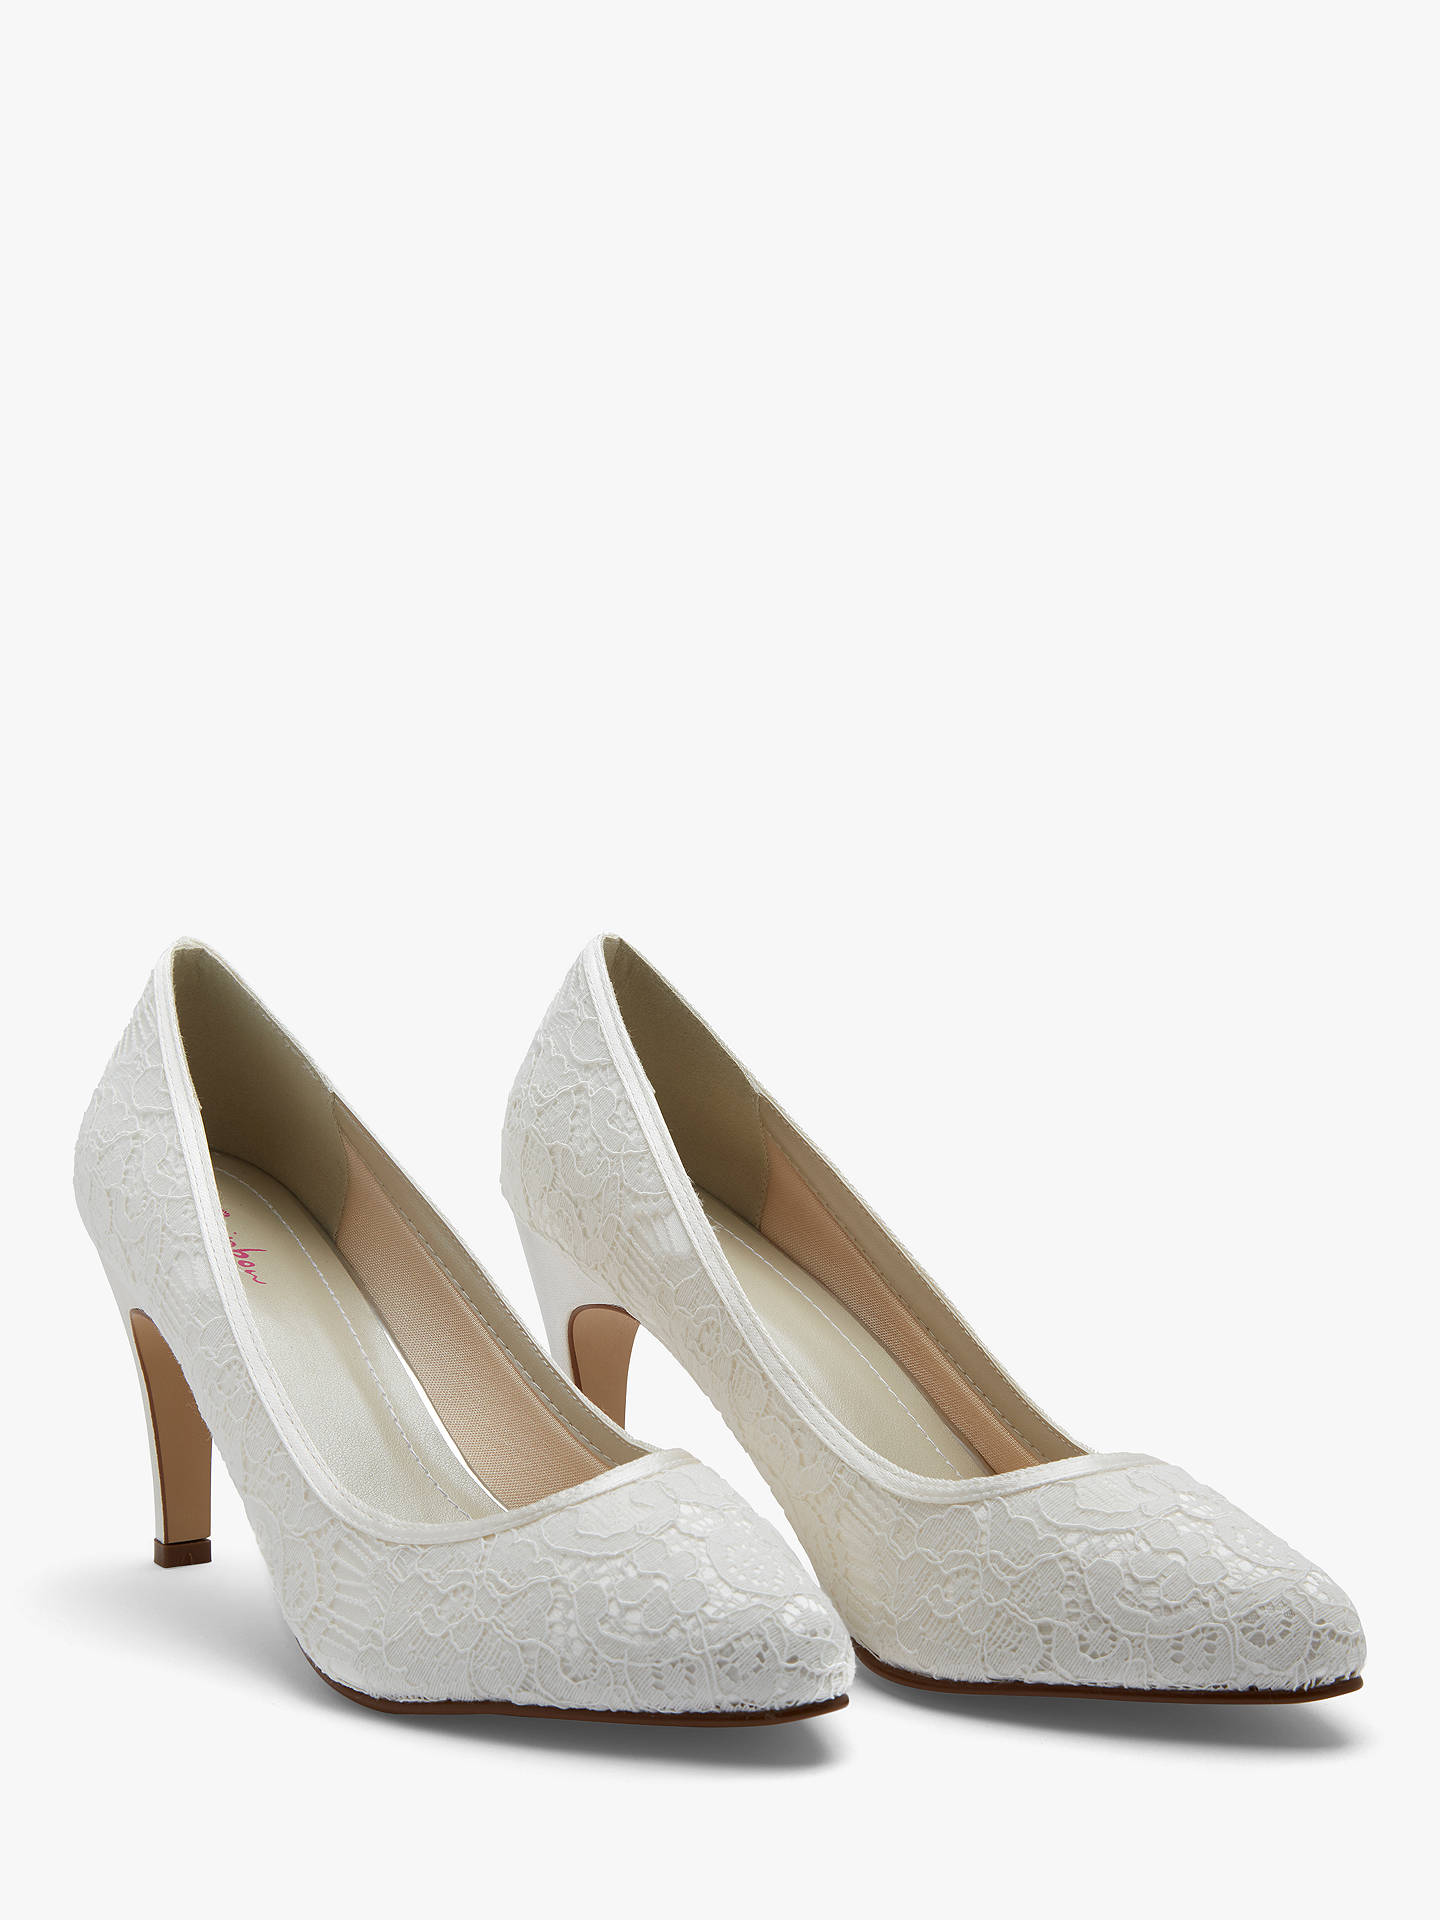 BuyRainbow Club Alexis Pointed Toe Court Shoes, Ivory, 3 Online at johnlewis.com